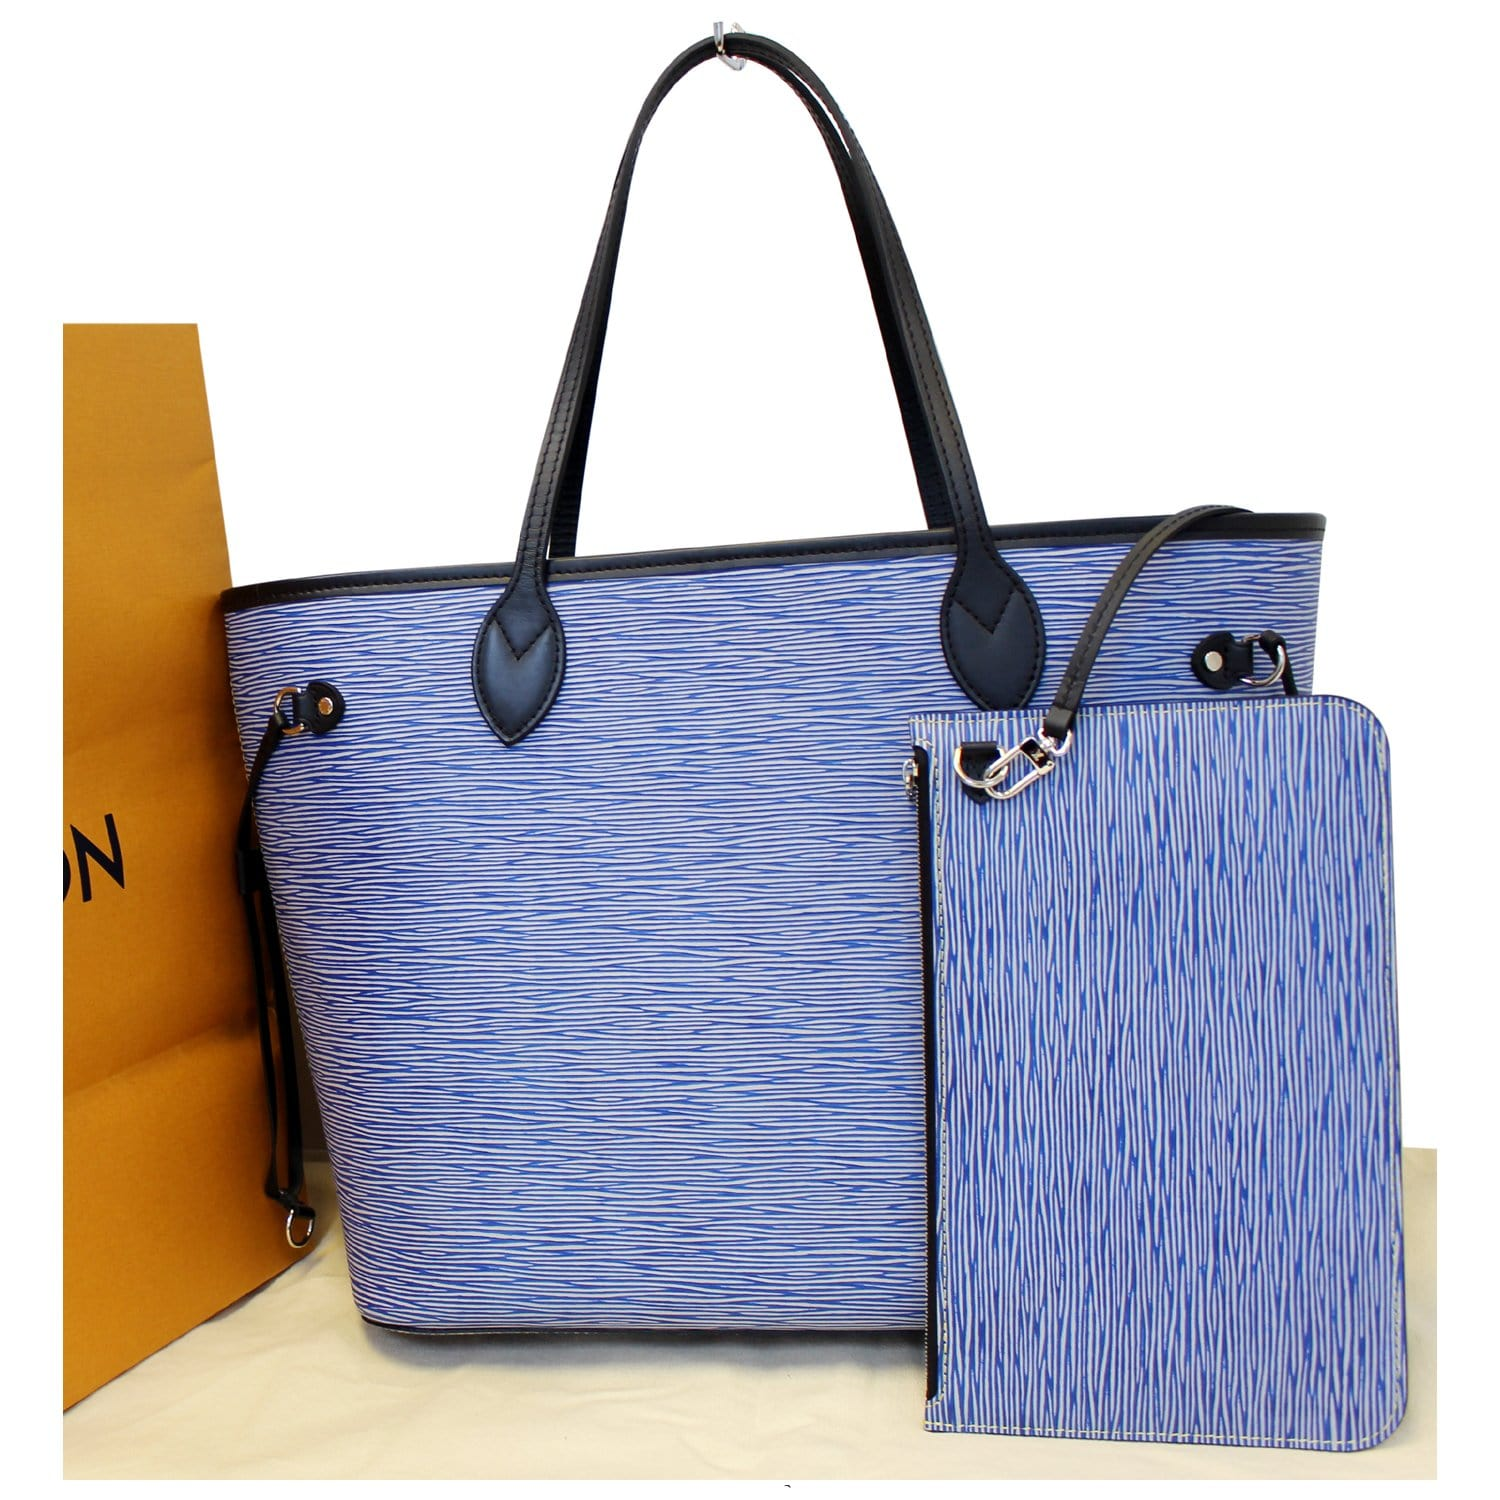 24db28283dc0 Louis Vuitton Neverfull MM Epi Leather Denim Blue Tote Bag w Pouch